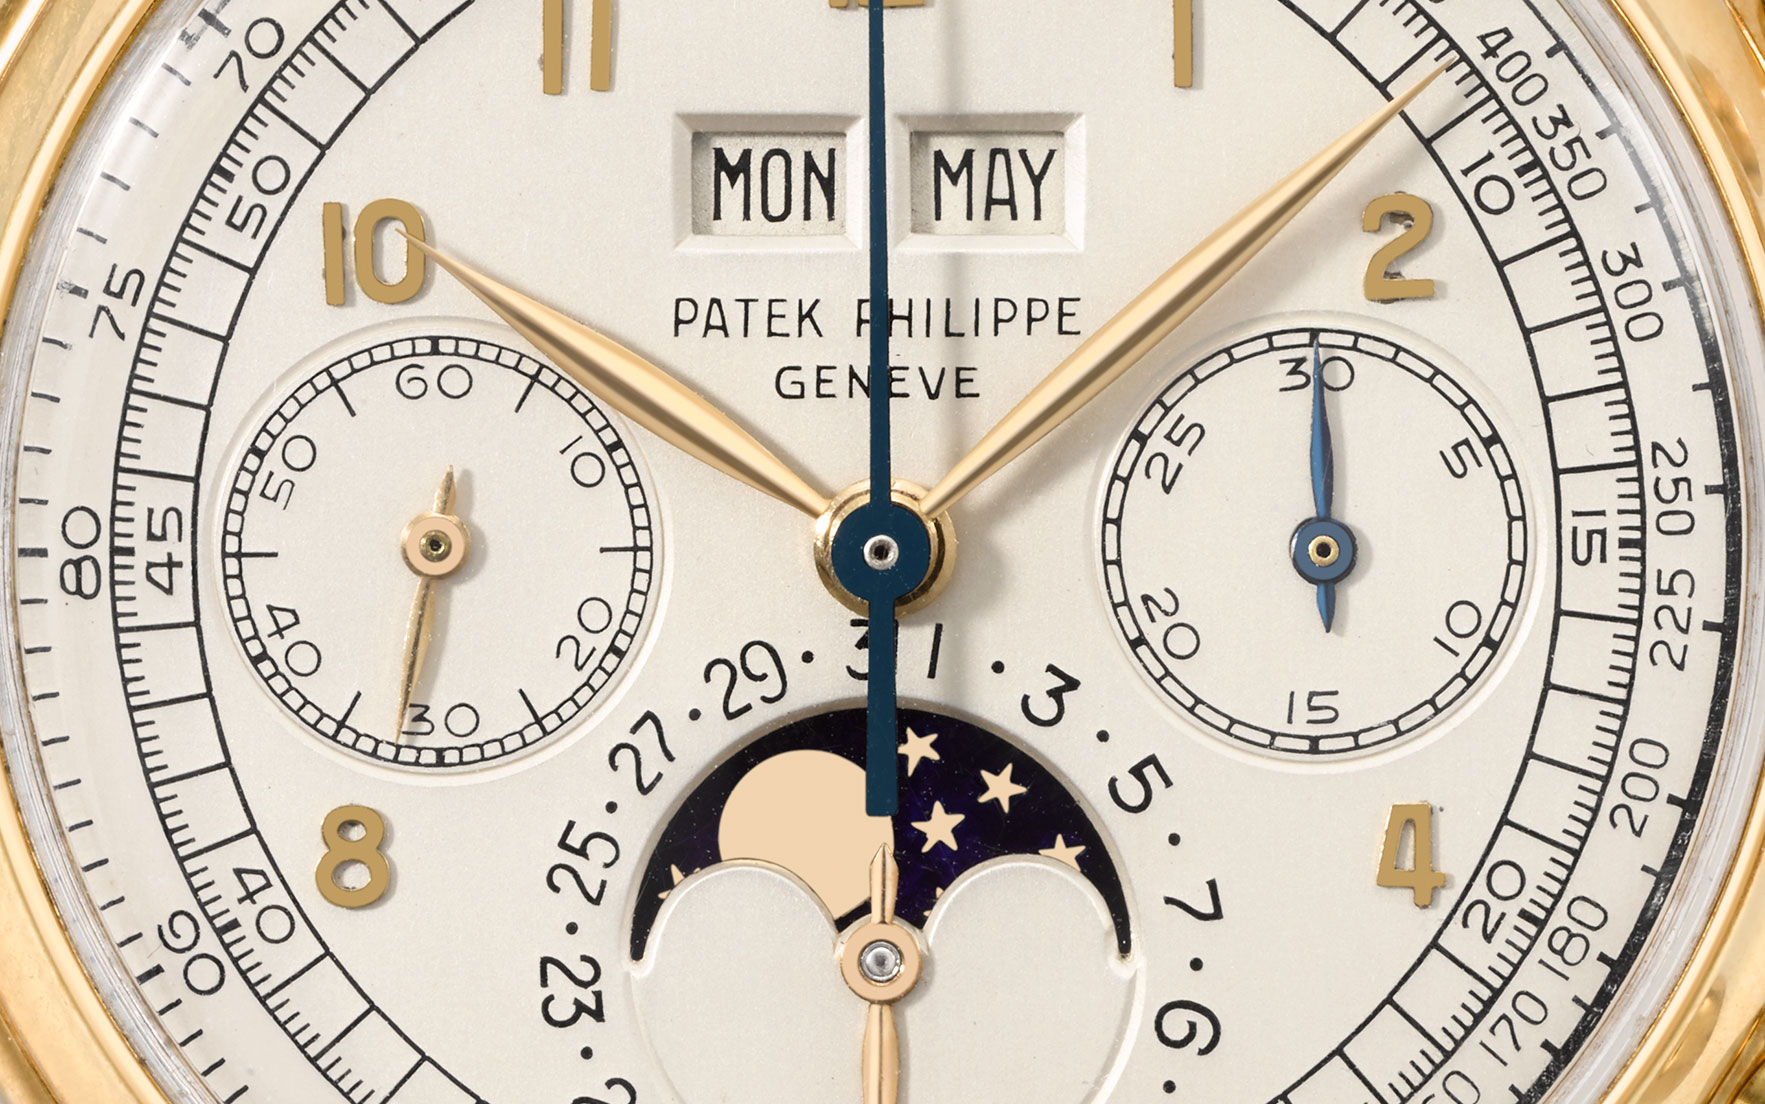 Collecting guide: Patek Philip